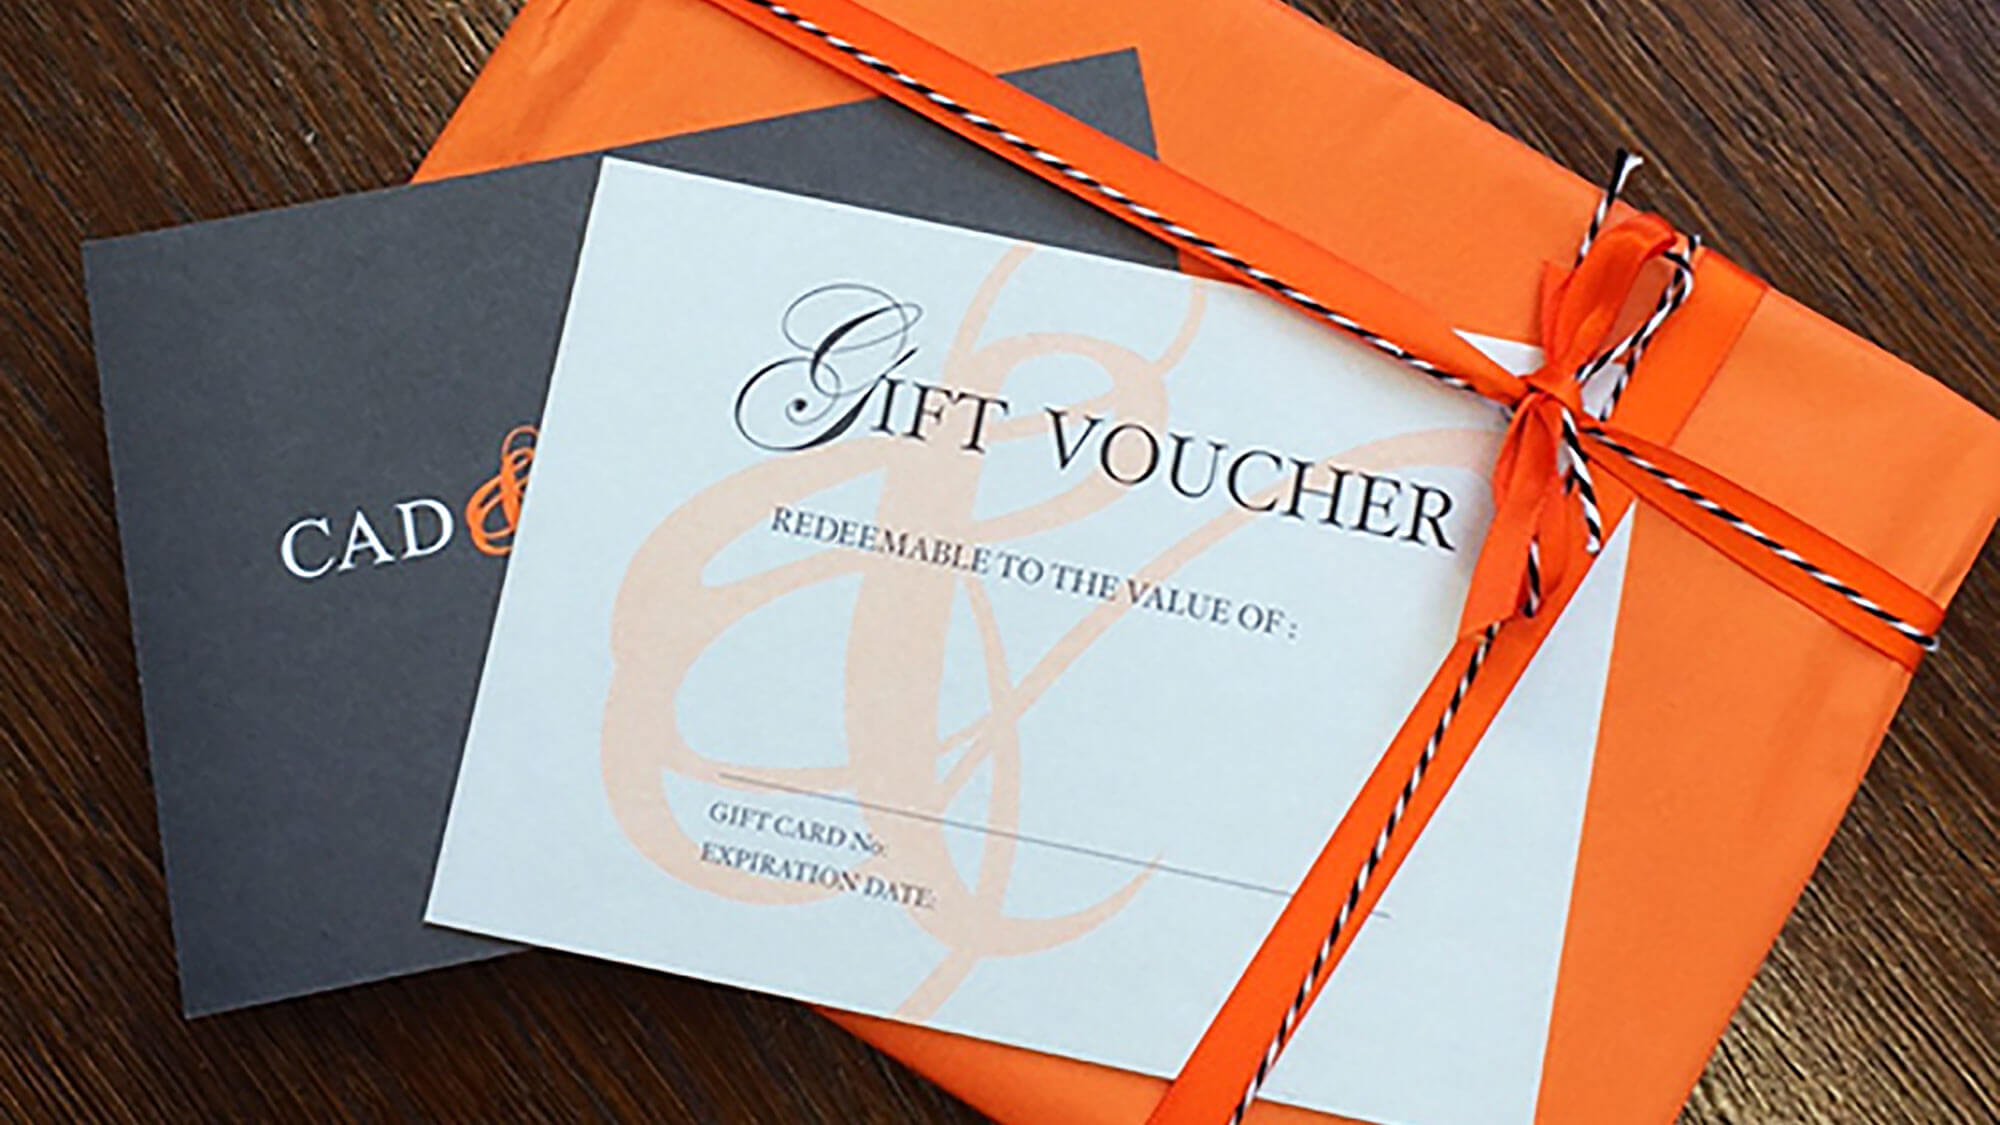 Cad & The Dandy | Gift Voucher - Semi Bespoke Suit - Cad ...